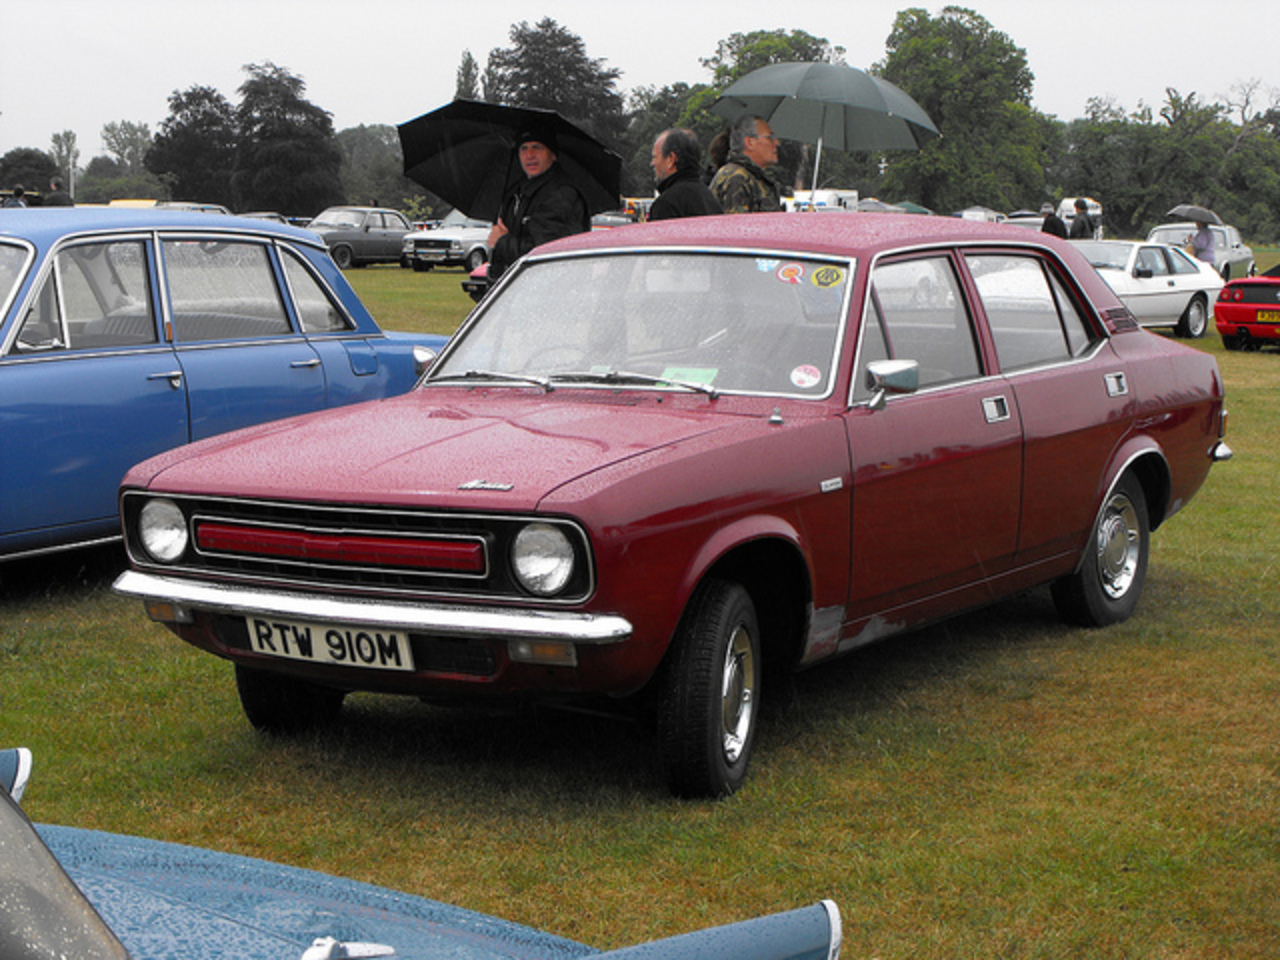 Morris Marina - RTW 910M | Flickr - Photo Sharing!